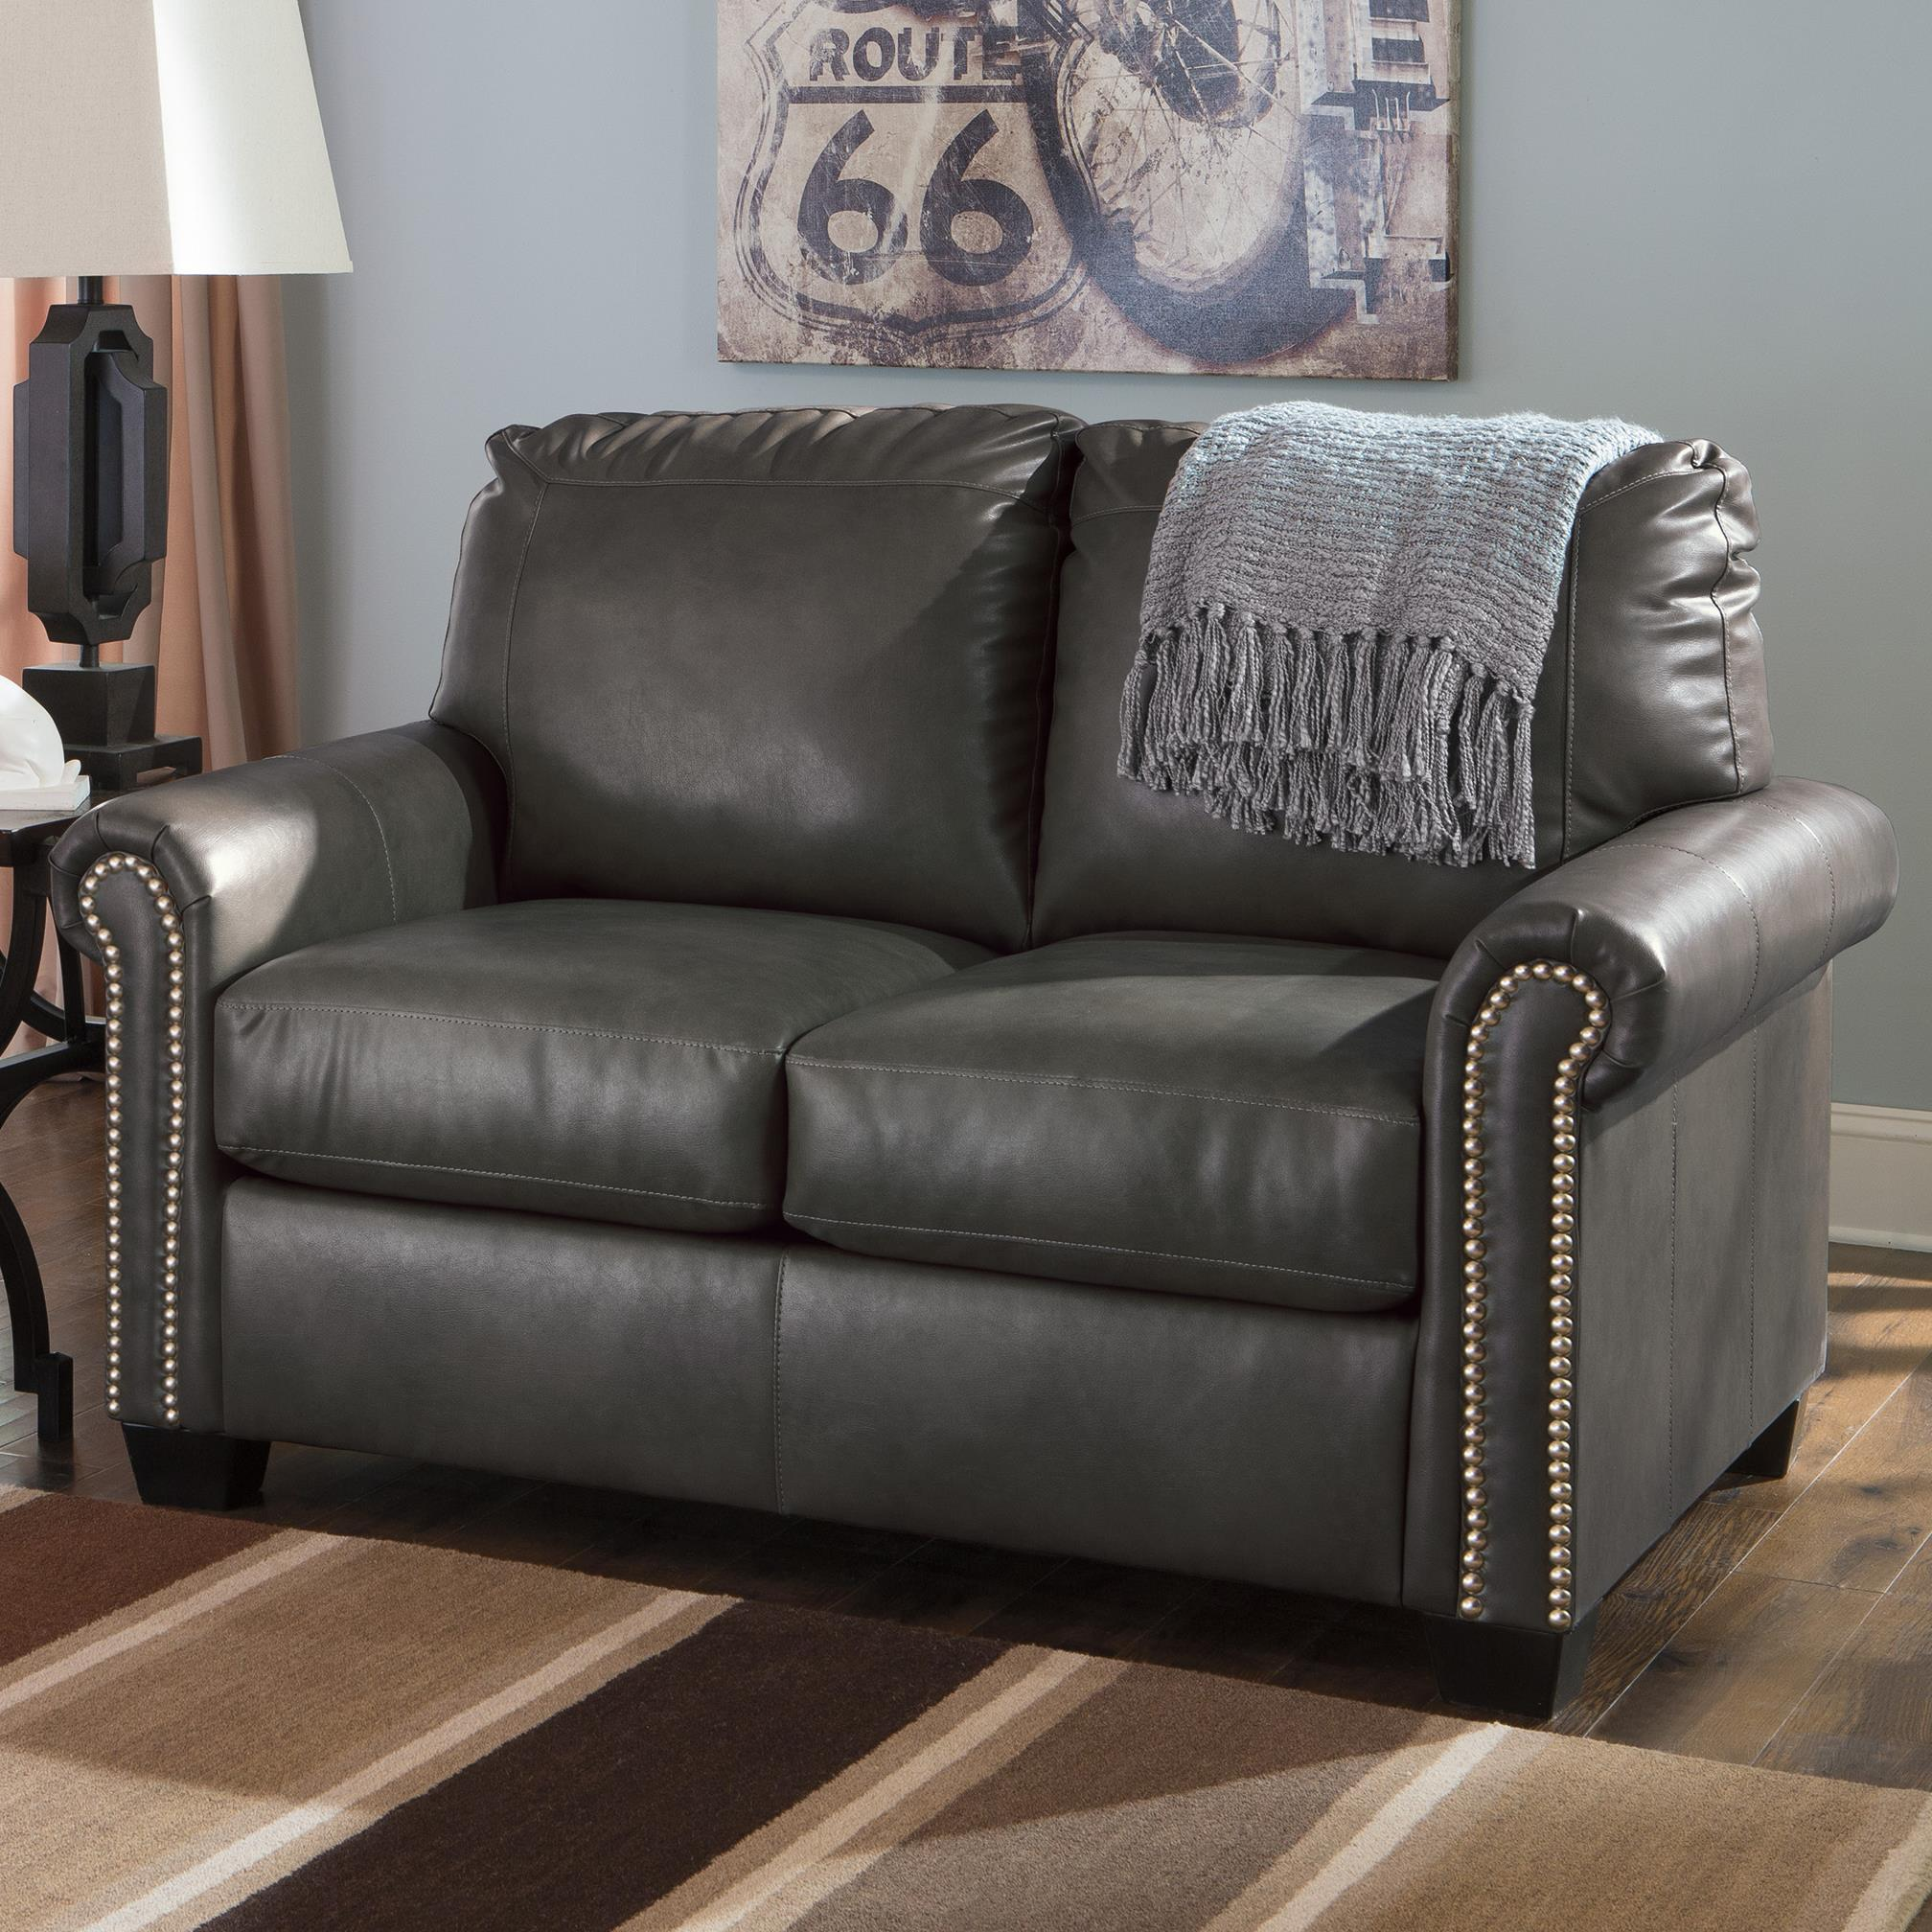 Signature Design by Ashley Lottie DuraBlend® Twin Sofa Sleeper - Item Number: 3800137